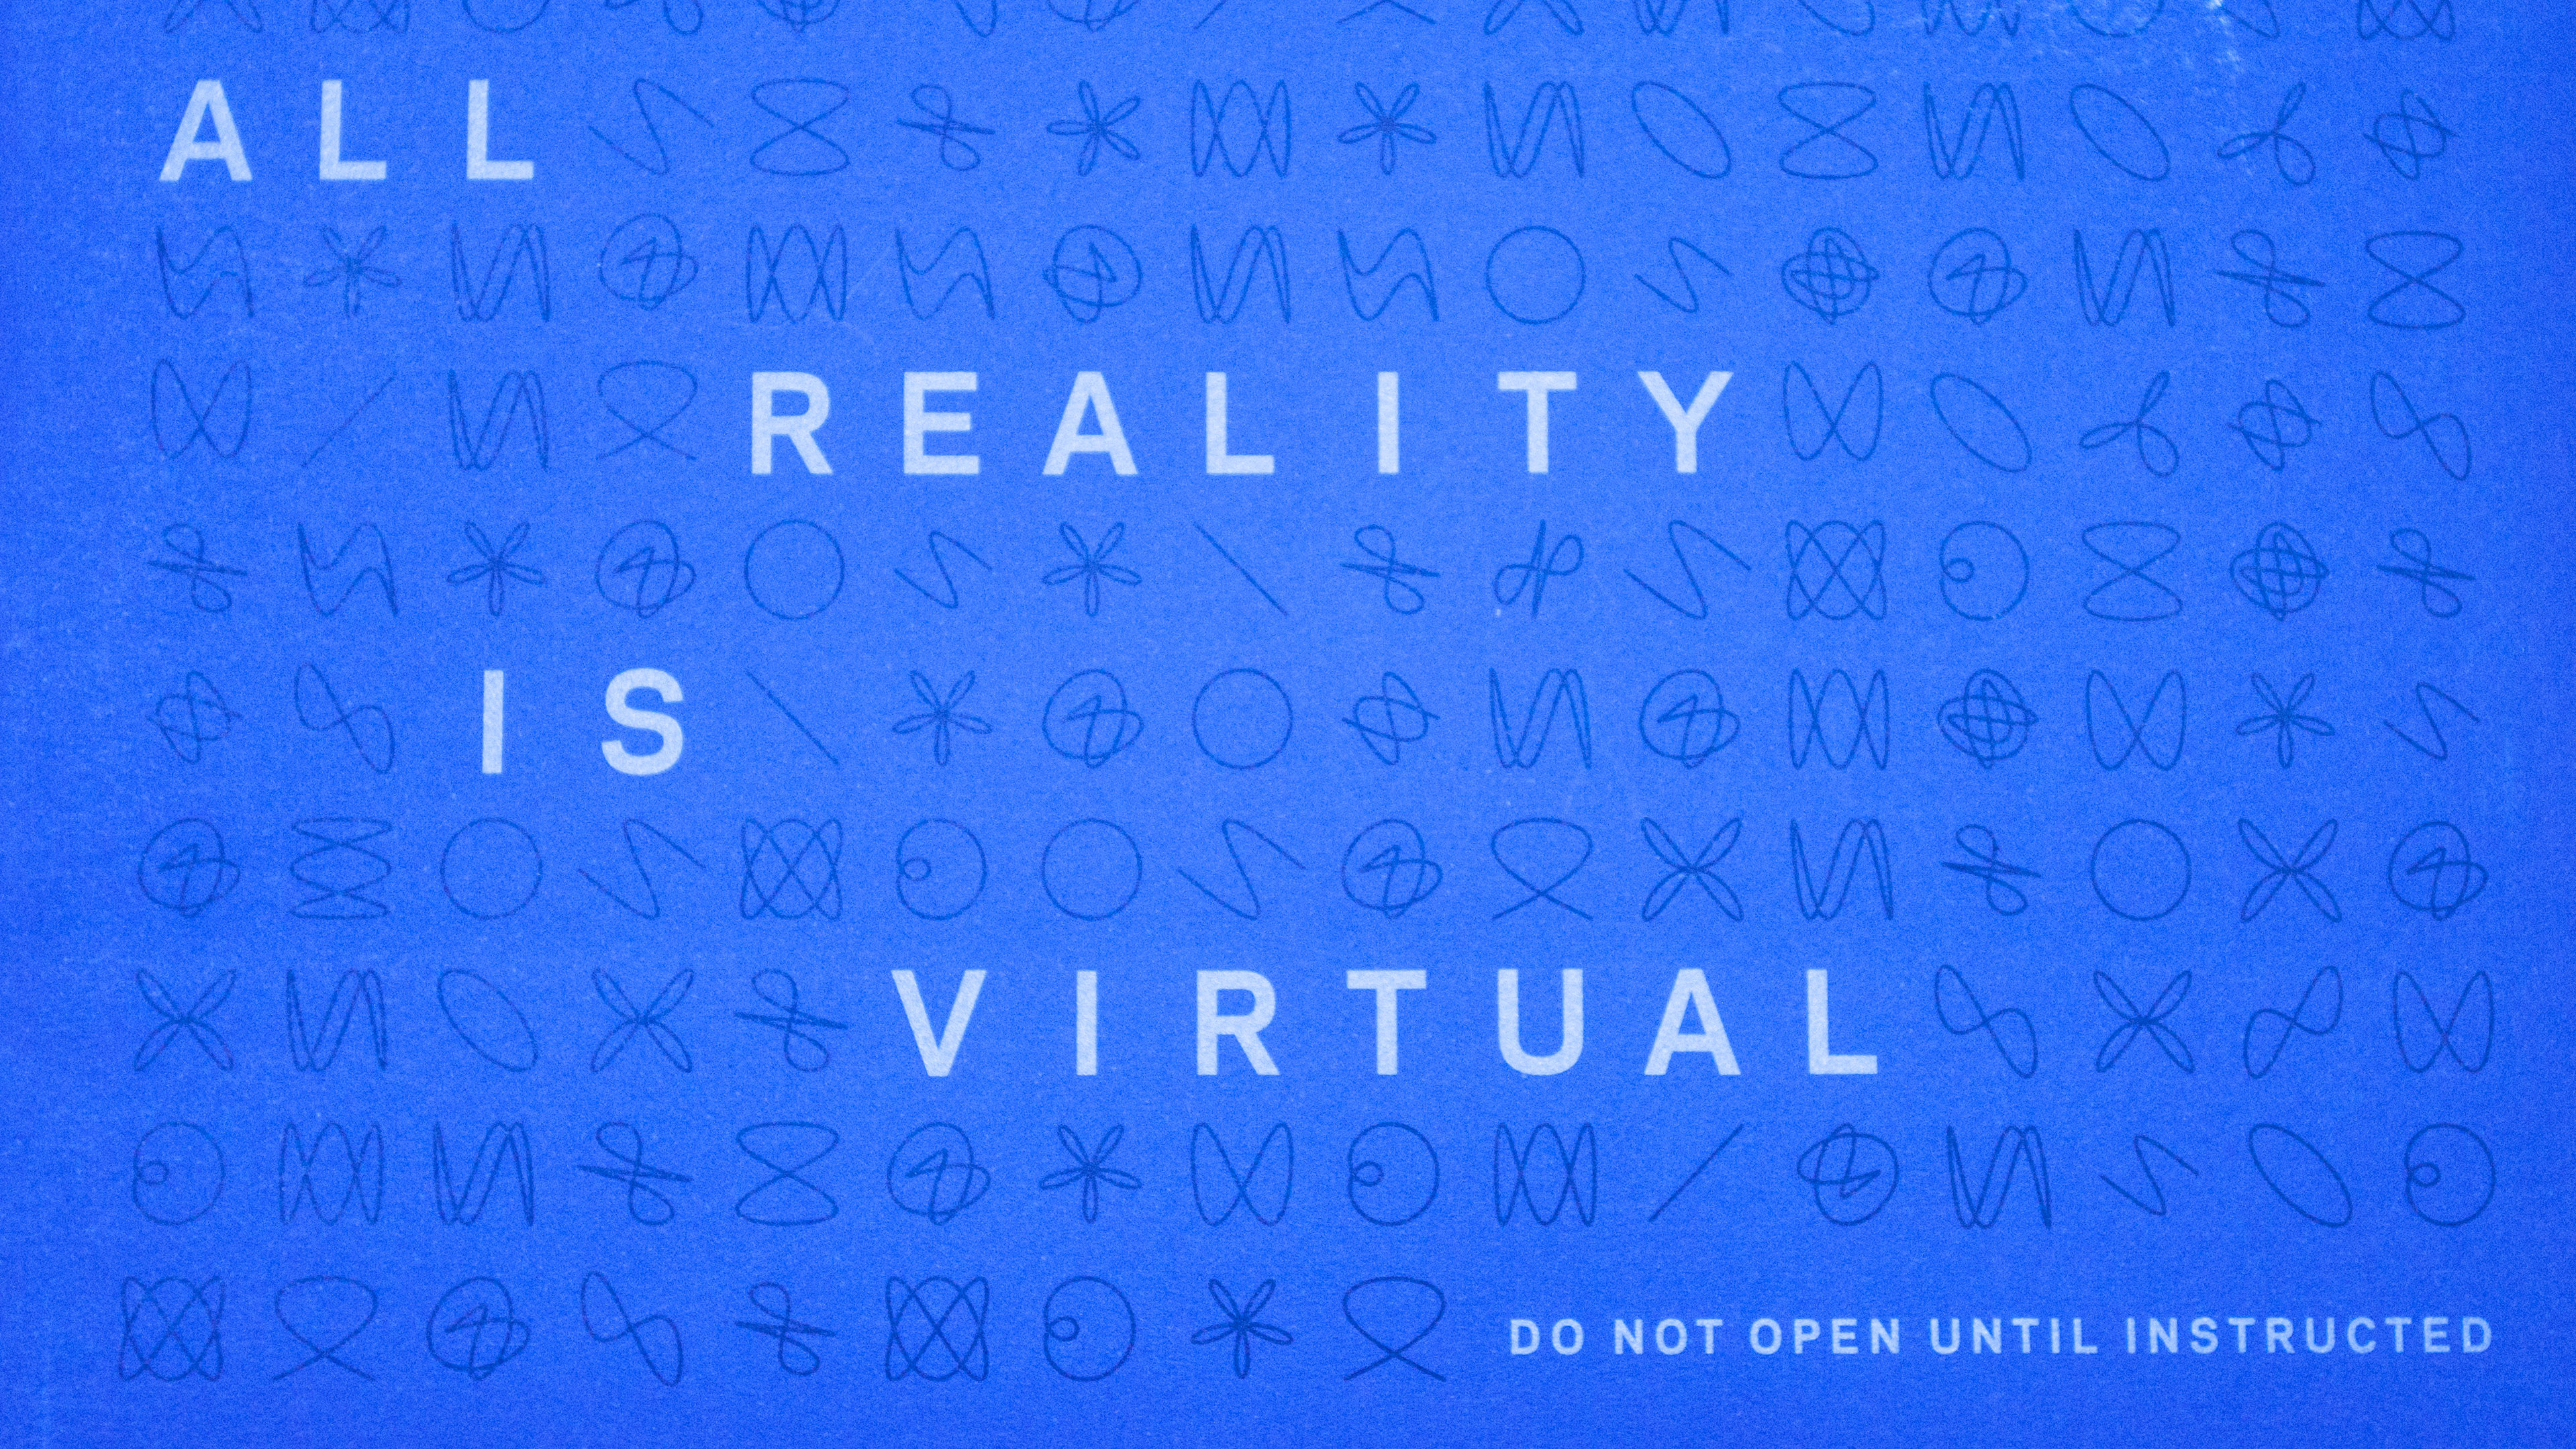 vr-all-reality-is-virtual